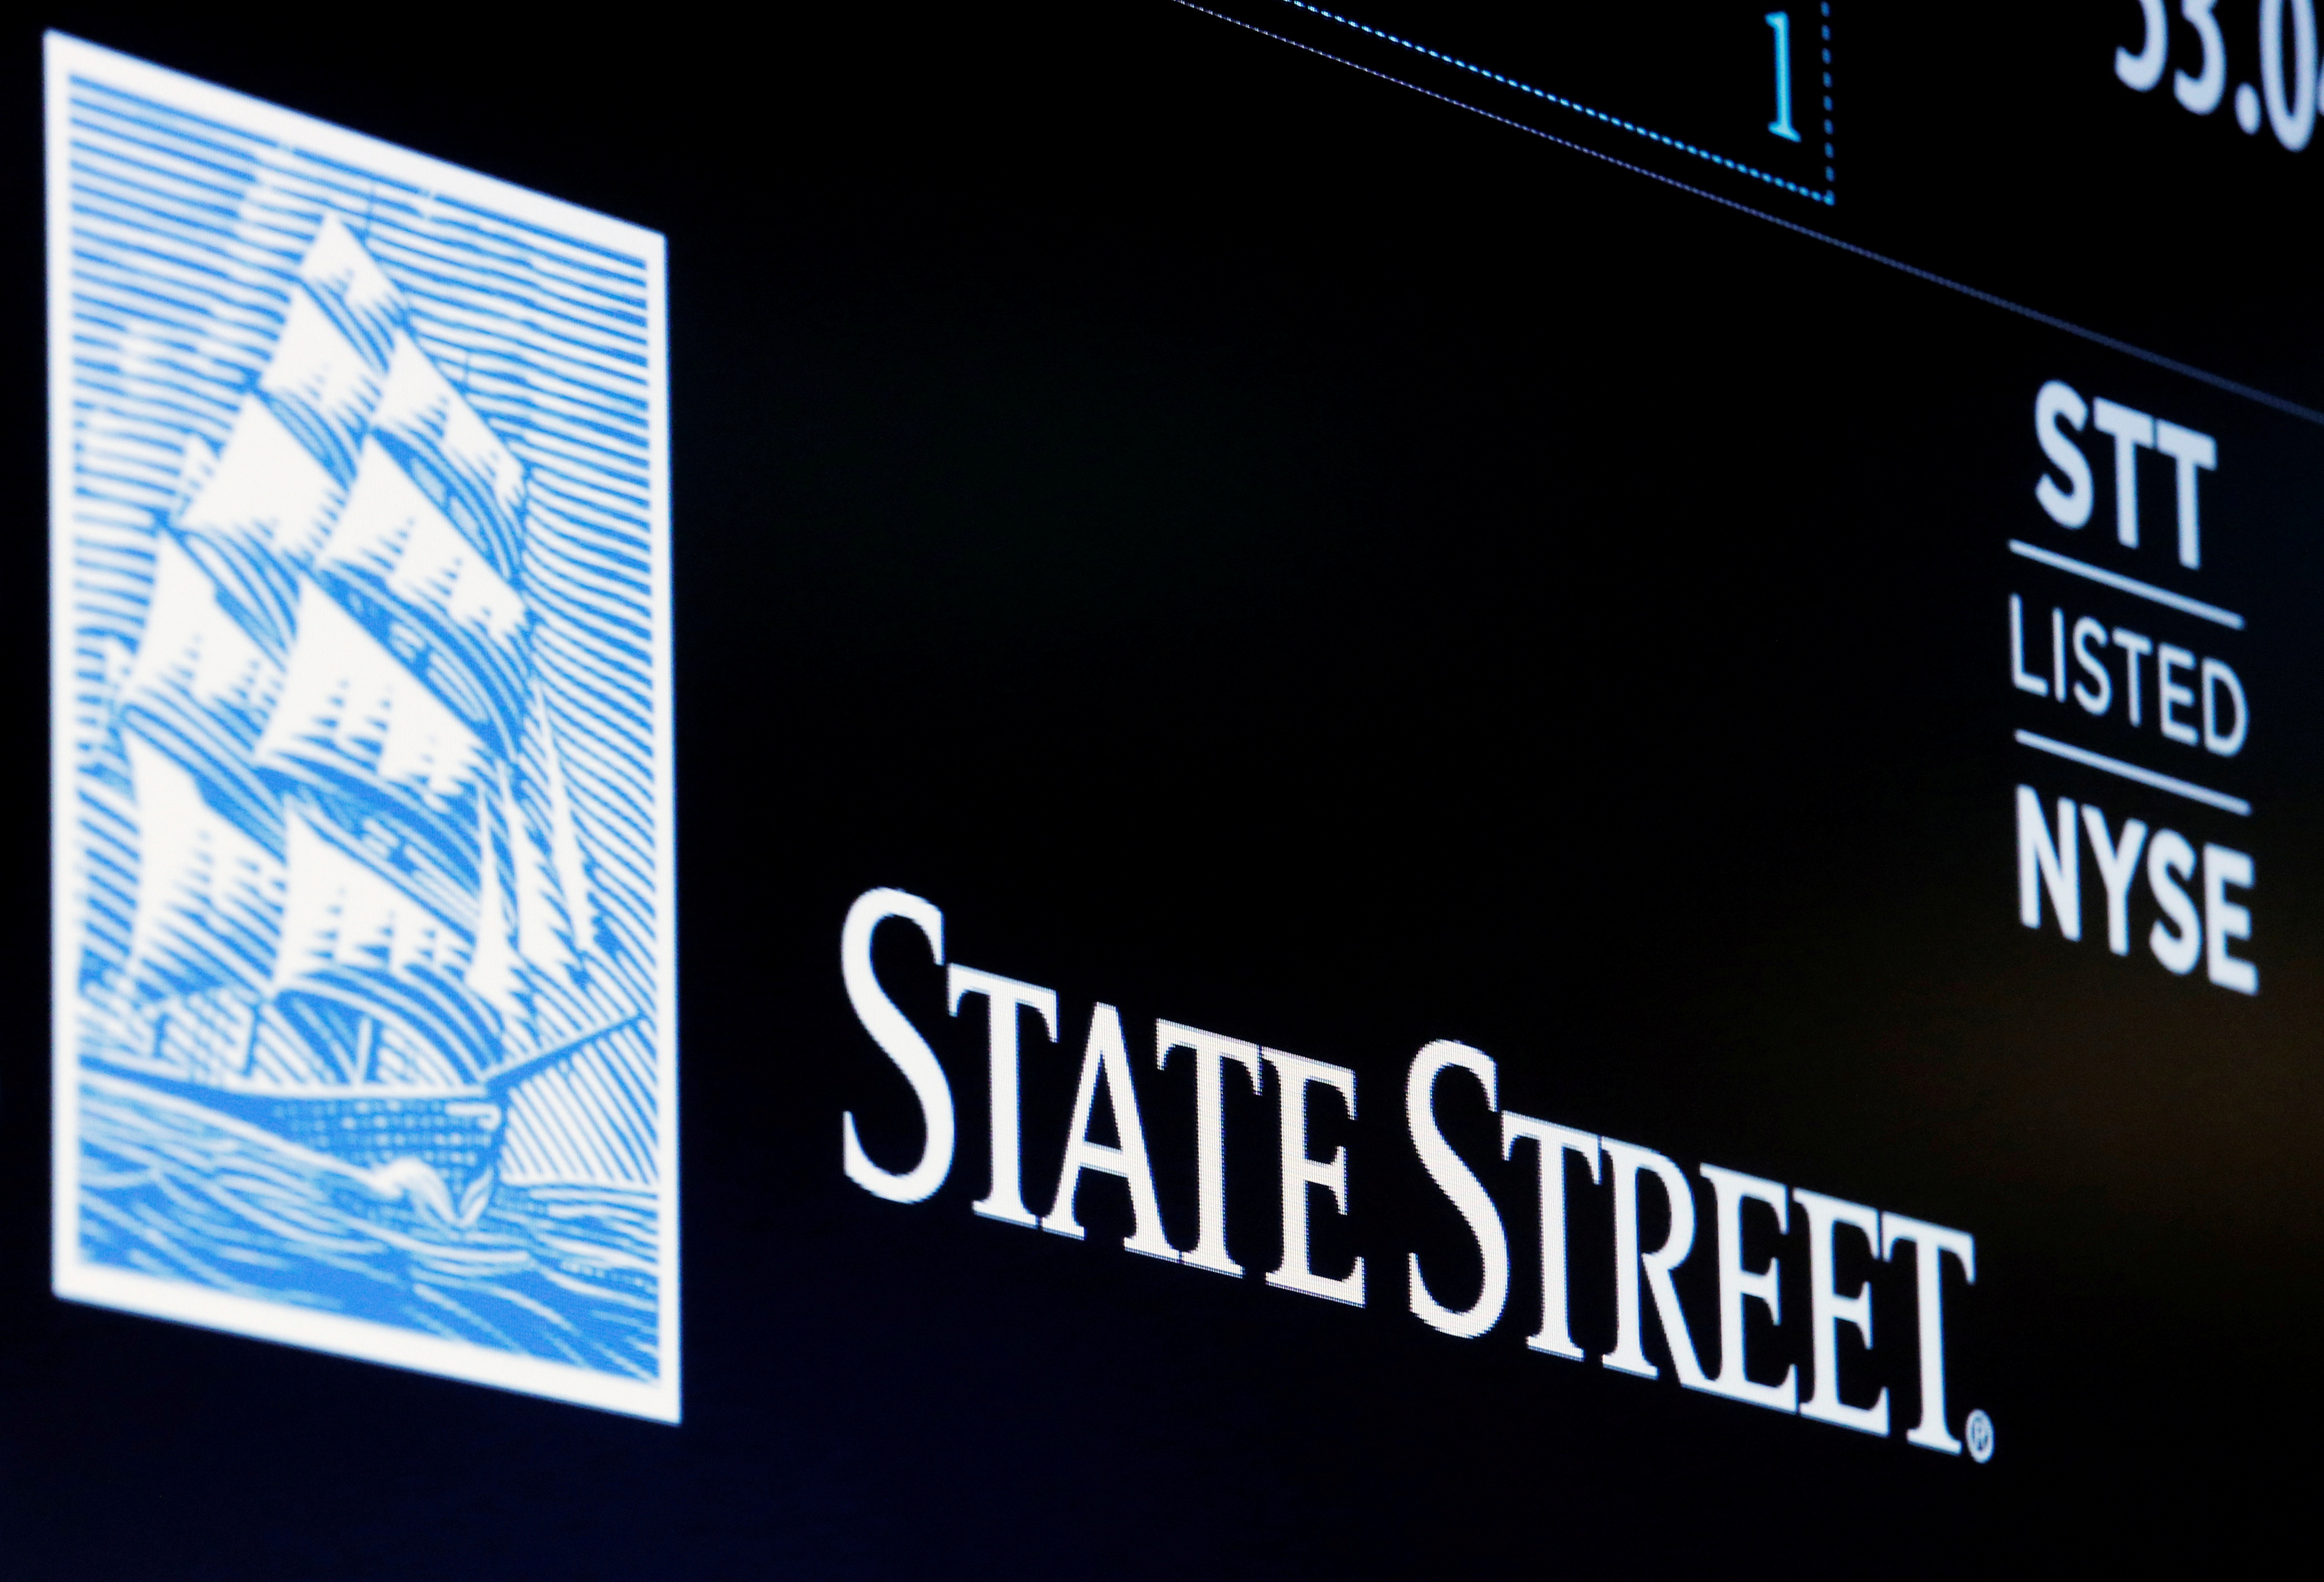 The ticker and logo for State Street Corporation is displayed on a screen at the post where it's traded on the floor of the New York Stock Exchange (NYSE) in New York City, U.S., June 30, 2016.  REUTERS/Brendan McDermid/File Photo